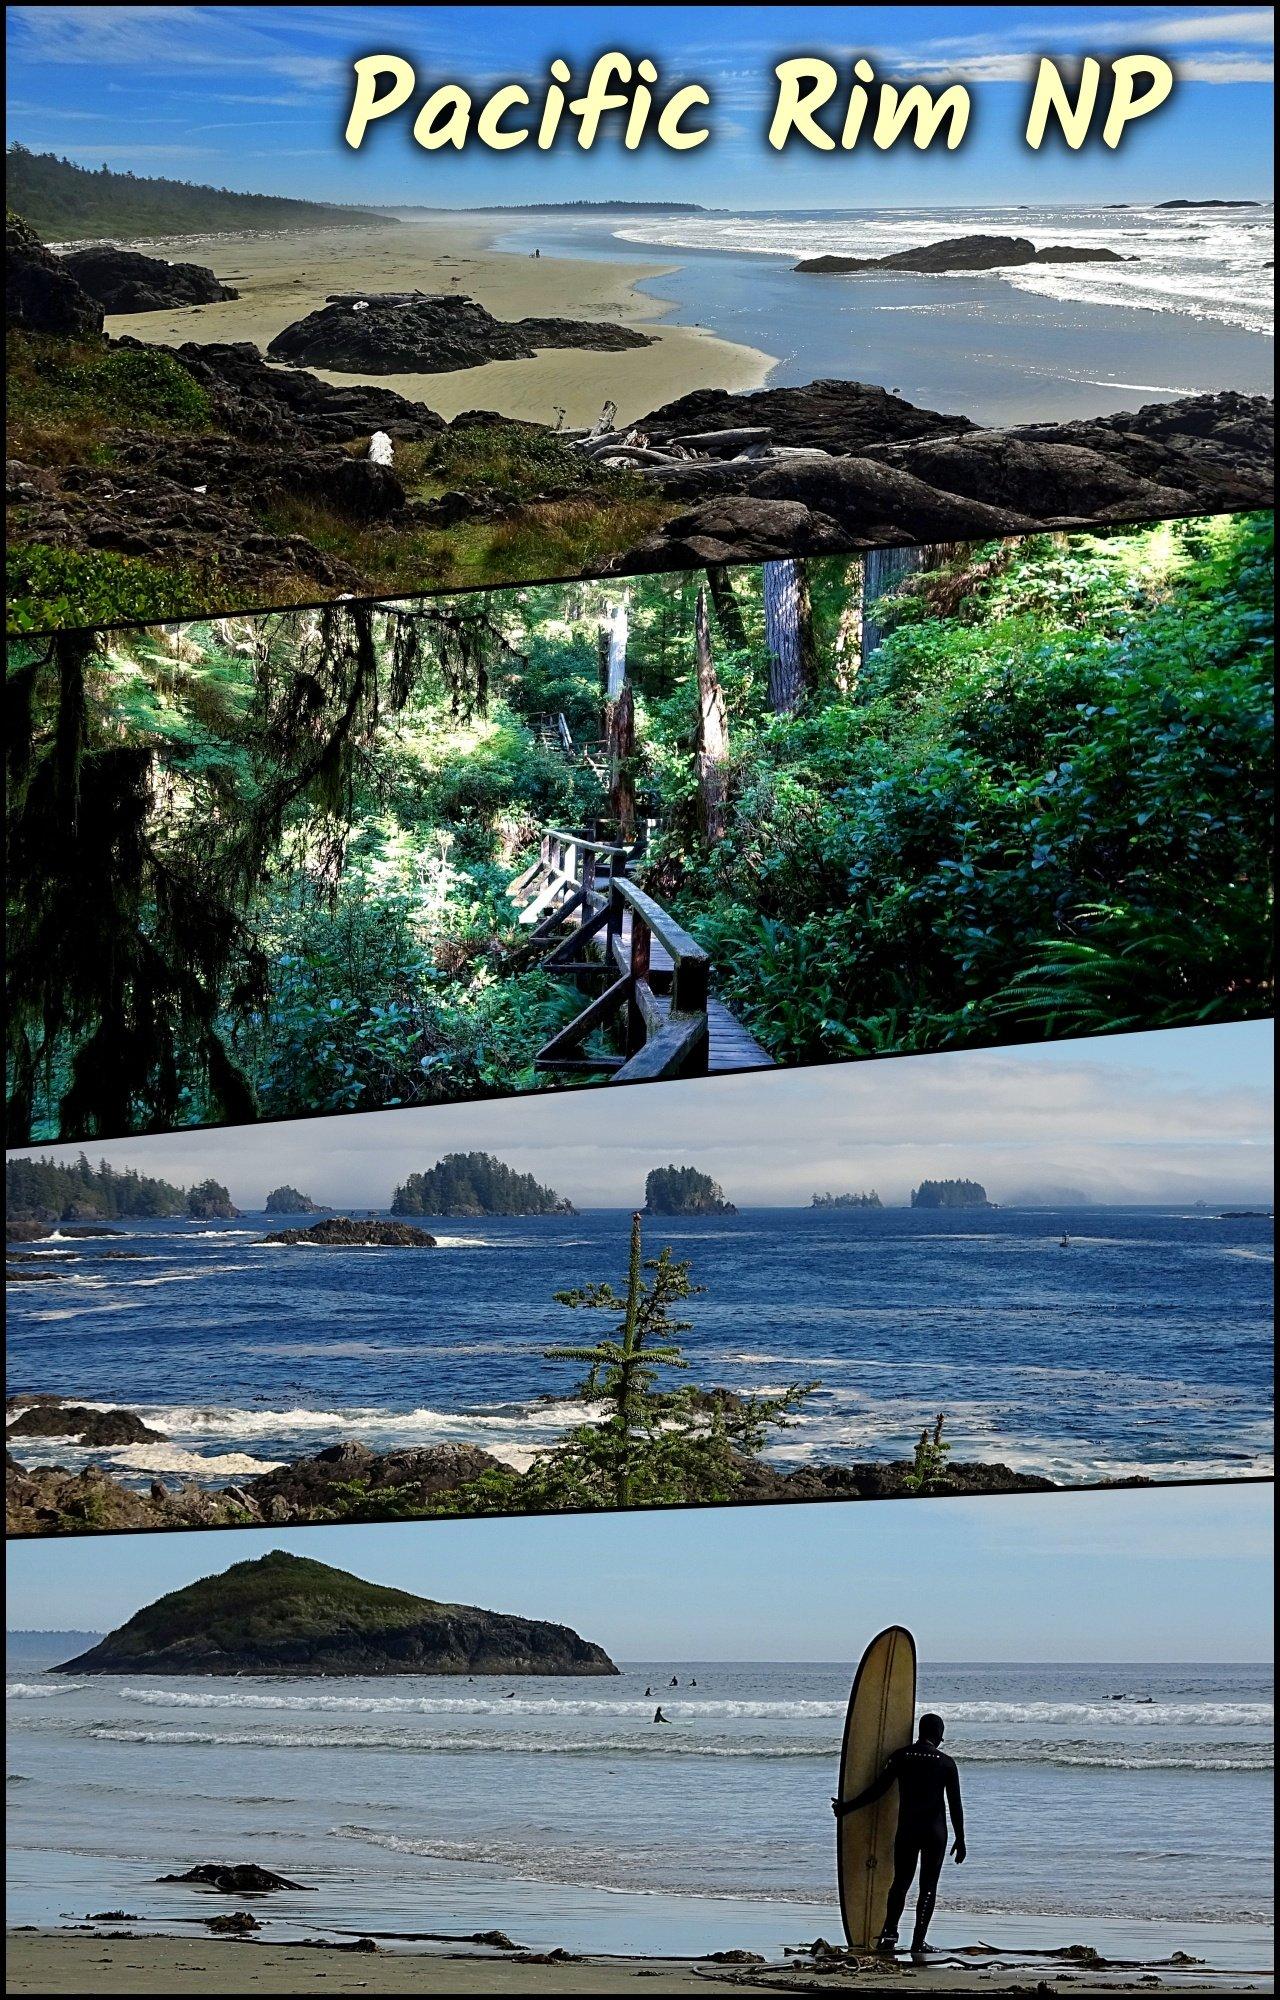 Fall Visit to Pacific Rim National Park, Vancouver Island BC